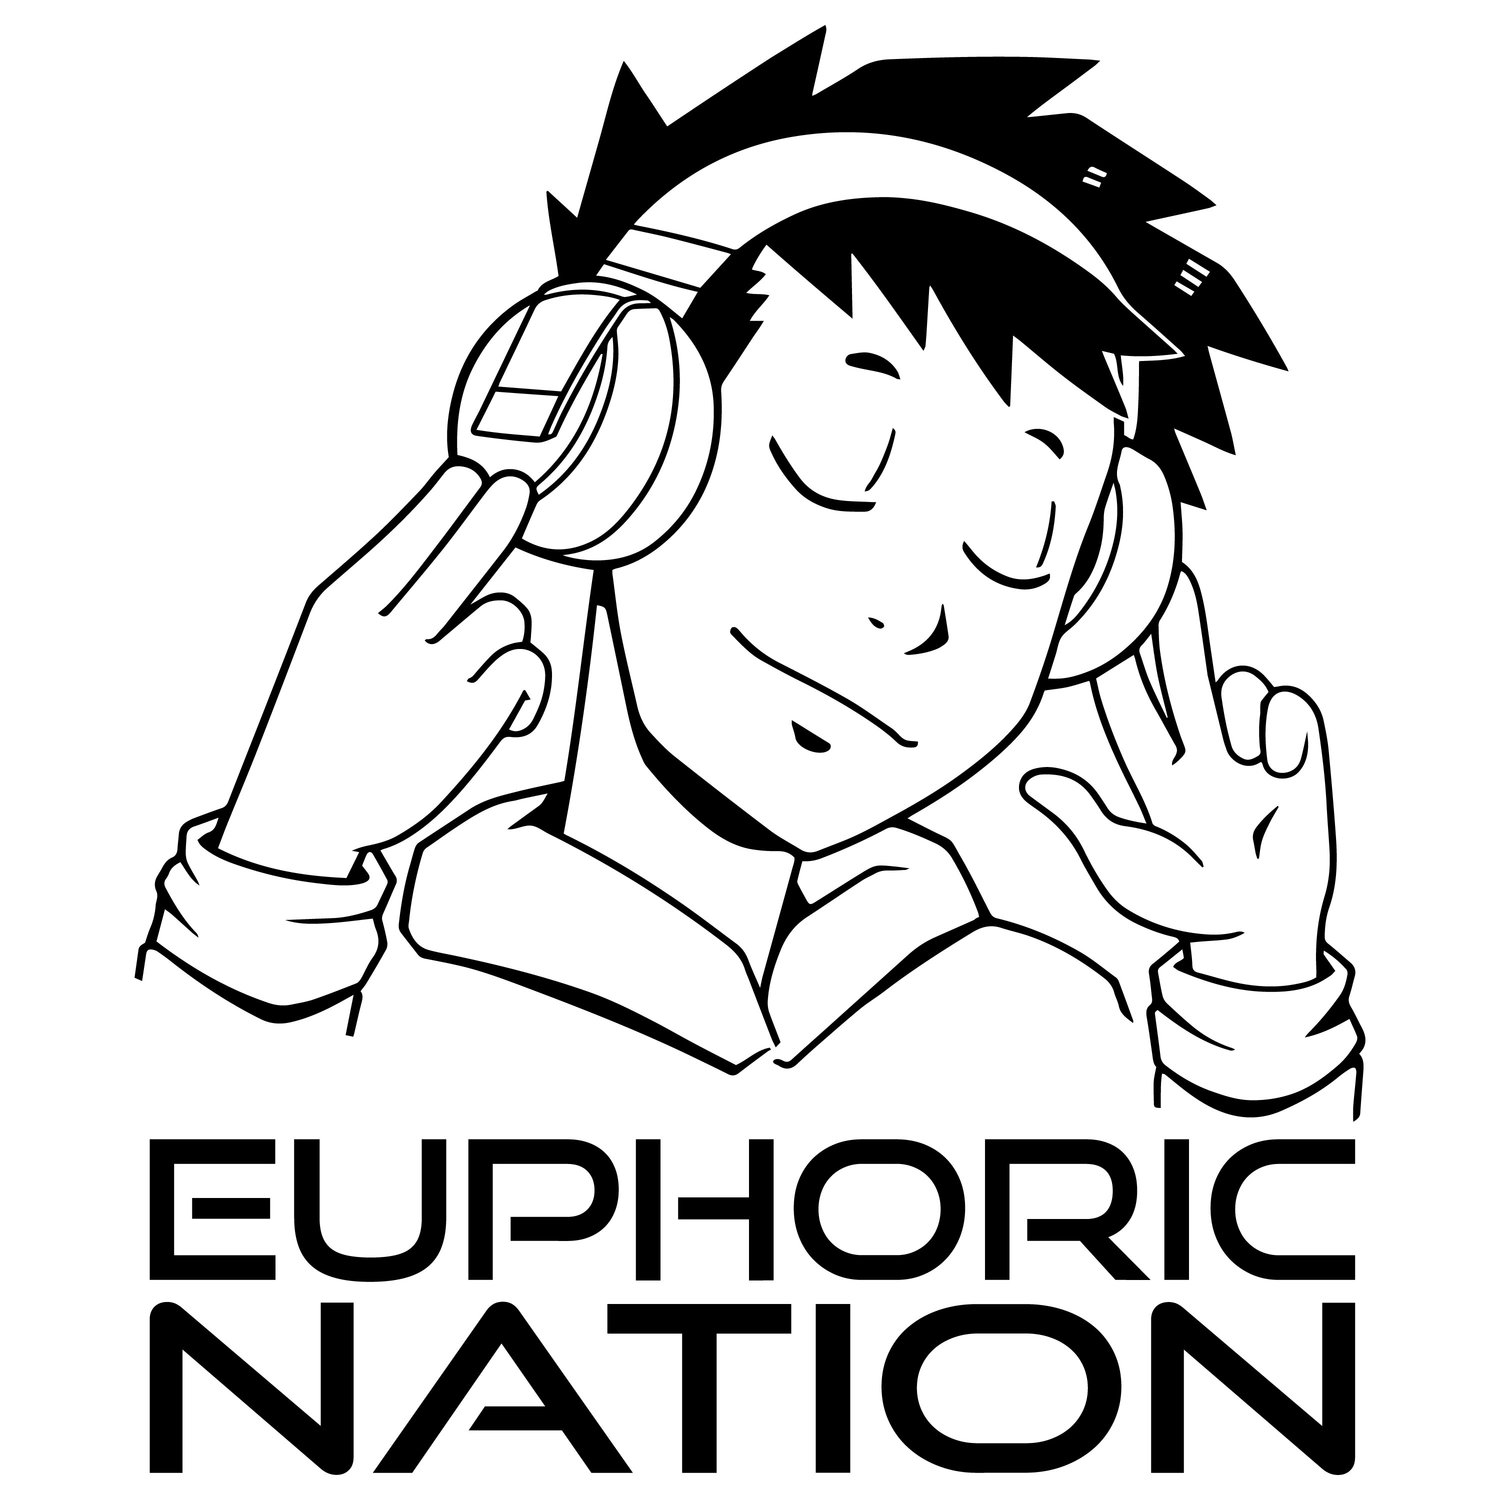 Euphoric Nation